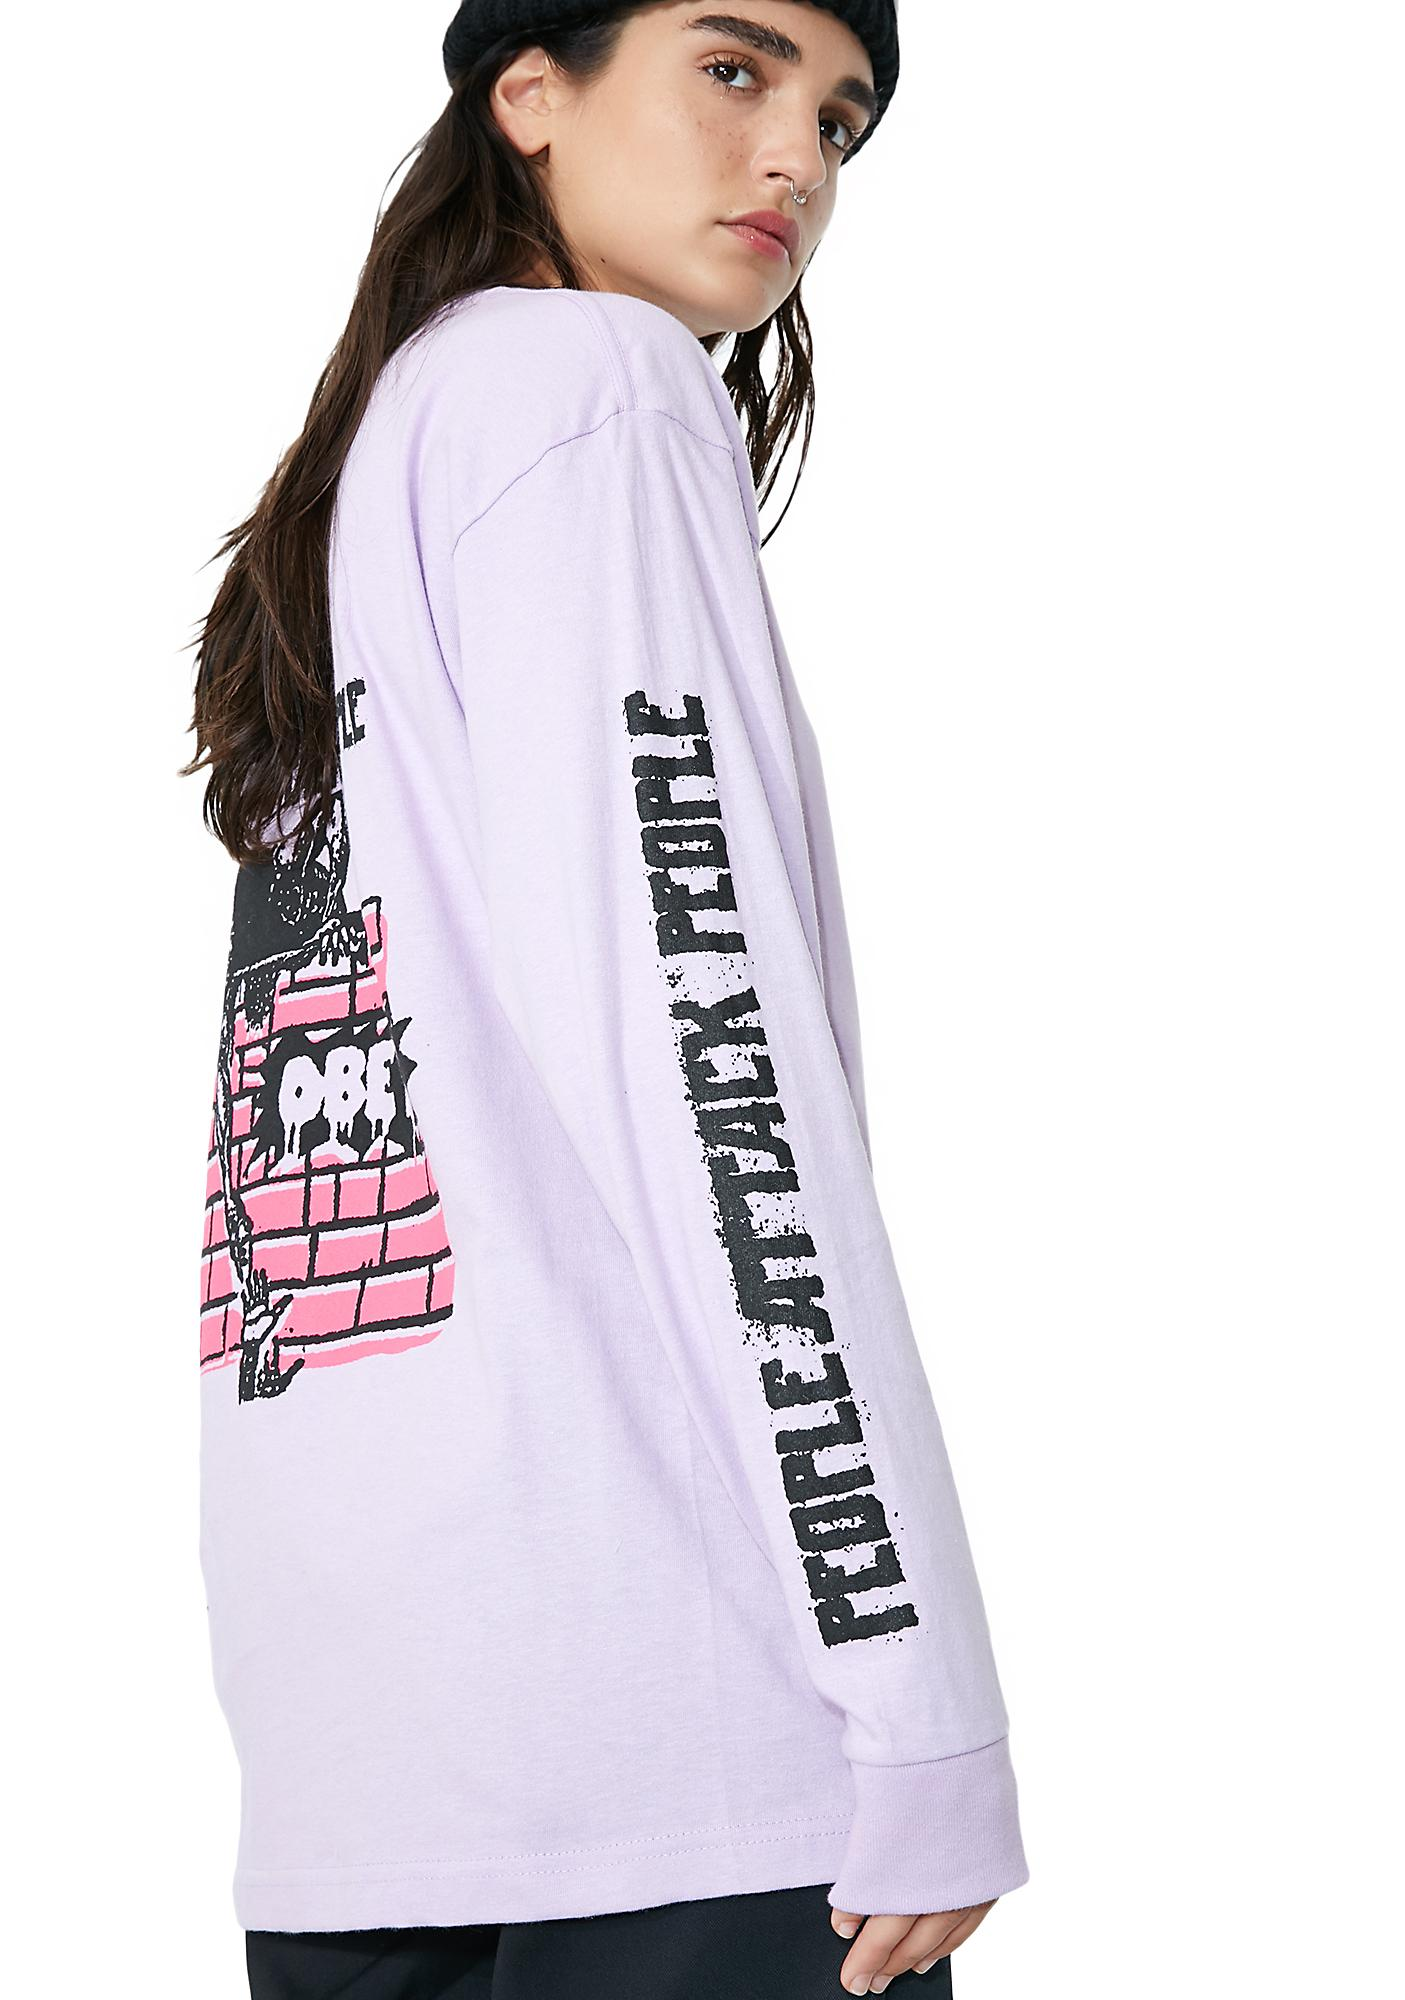 Obey People Attack People Long Sleeve